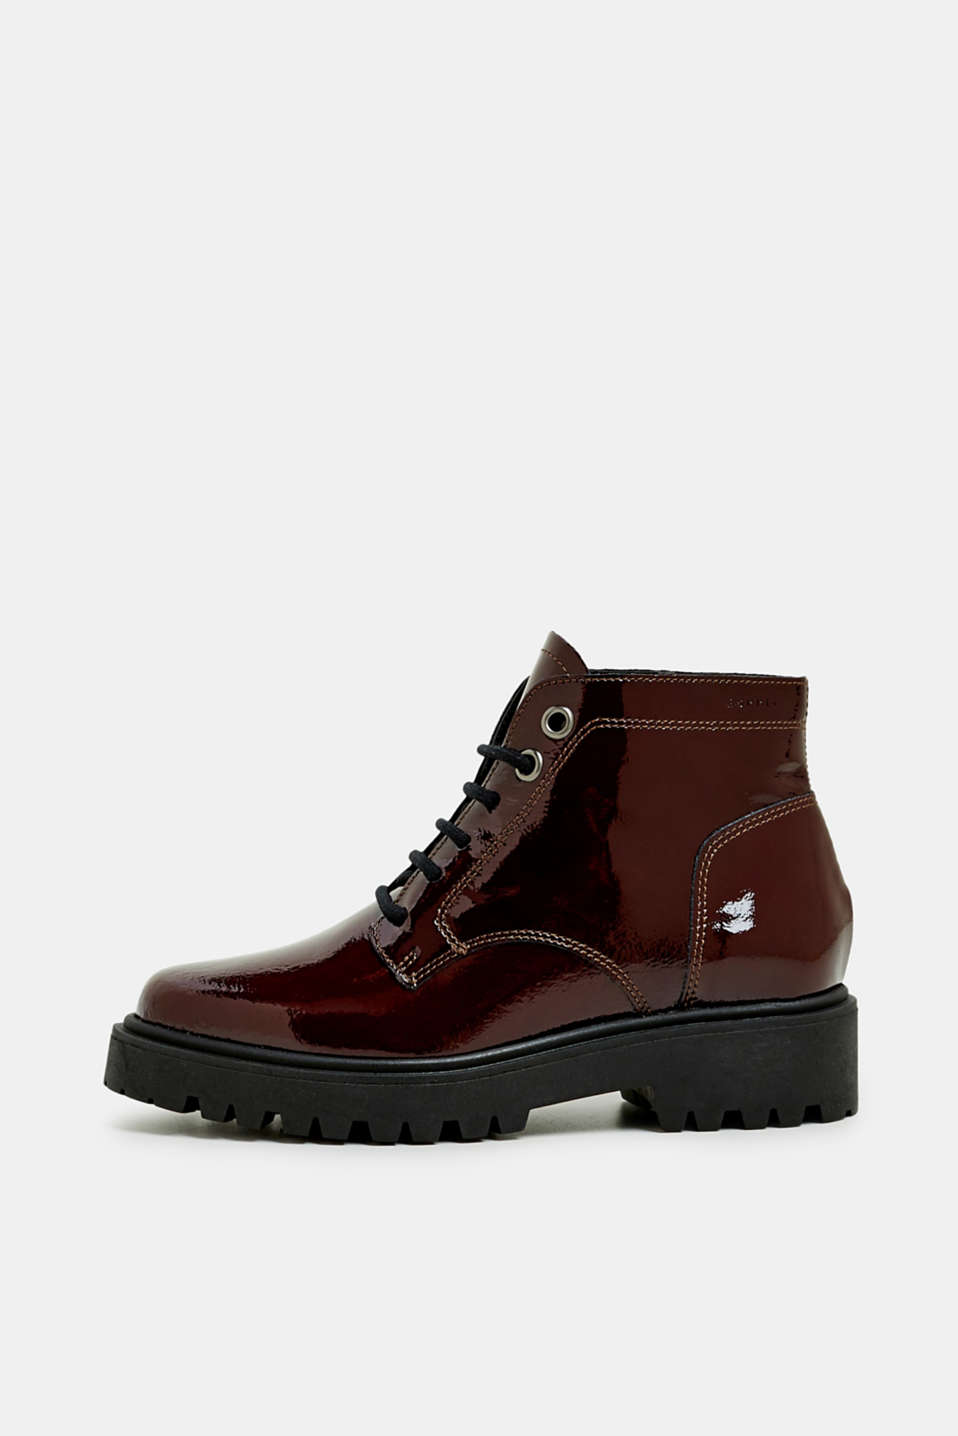 Esprit - Lace-up boots made of patent leather